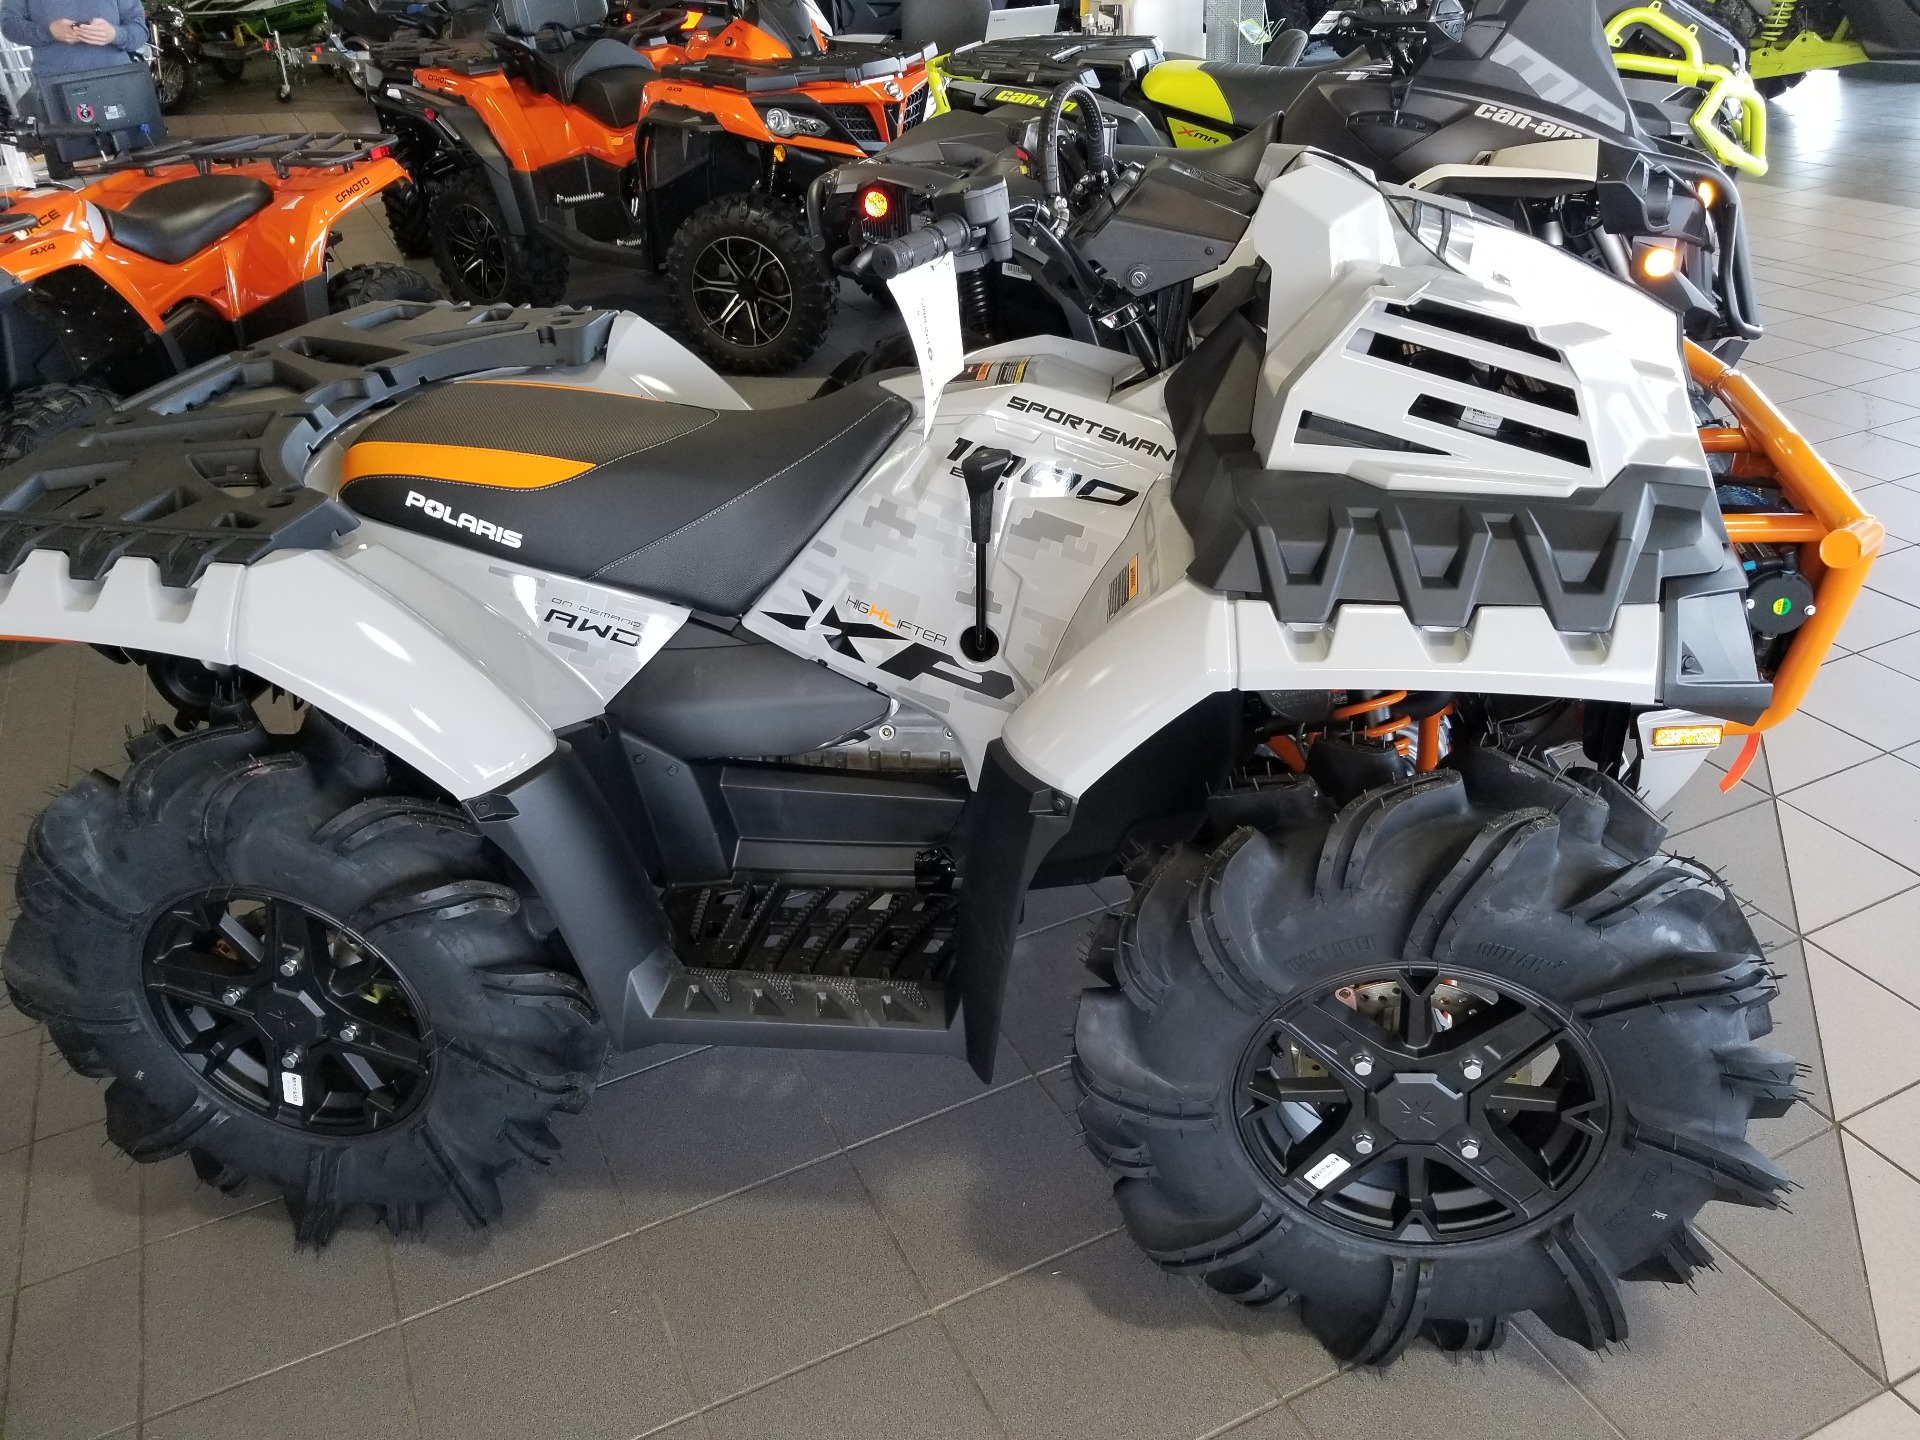 2021 Polaris Sportsman XP 1000 High Lifter Edition in Lafayette, Louisiana - Photo 1